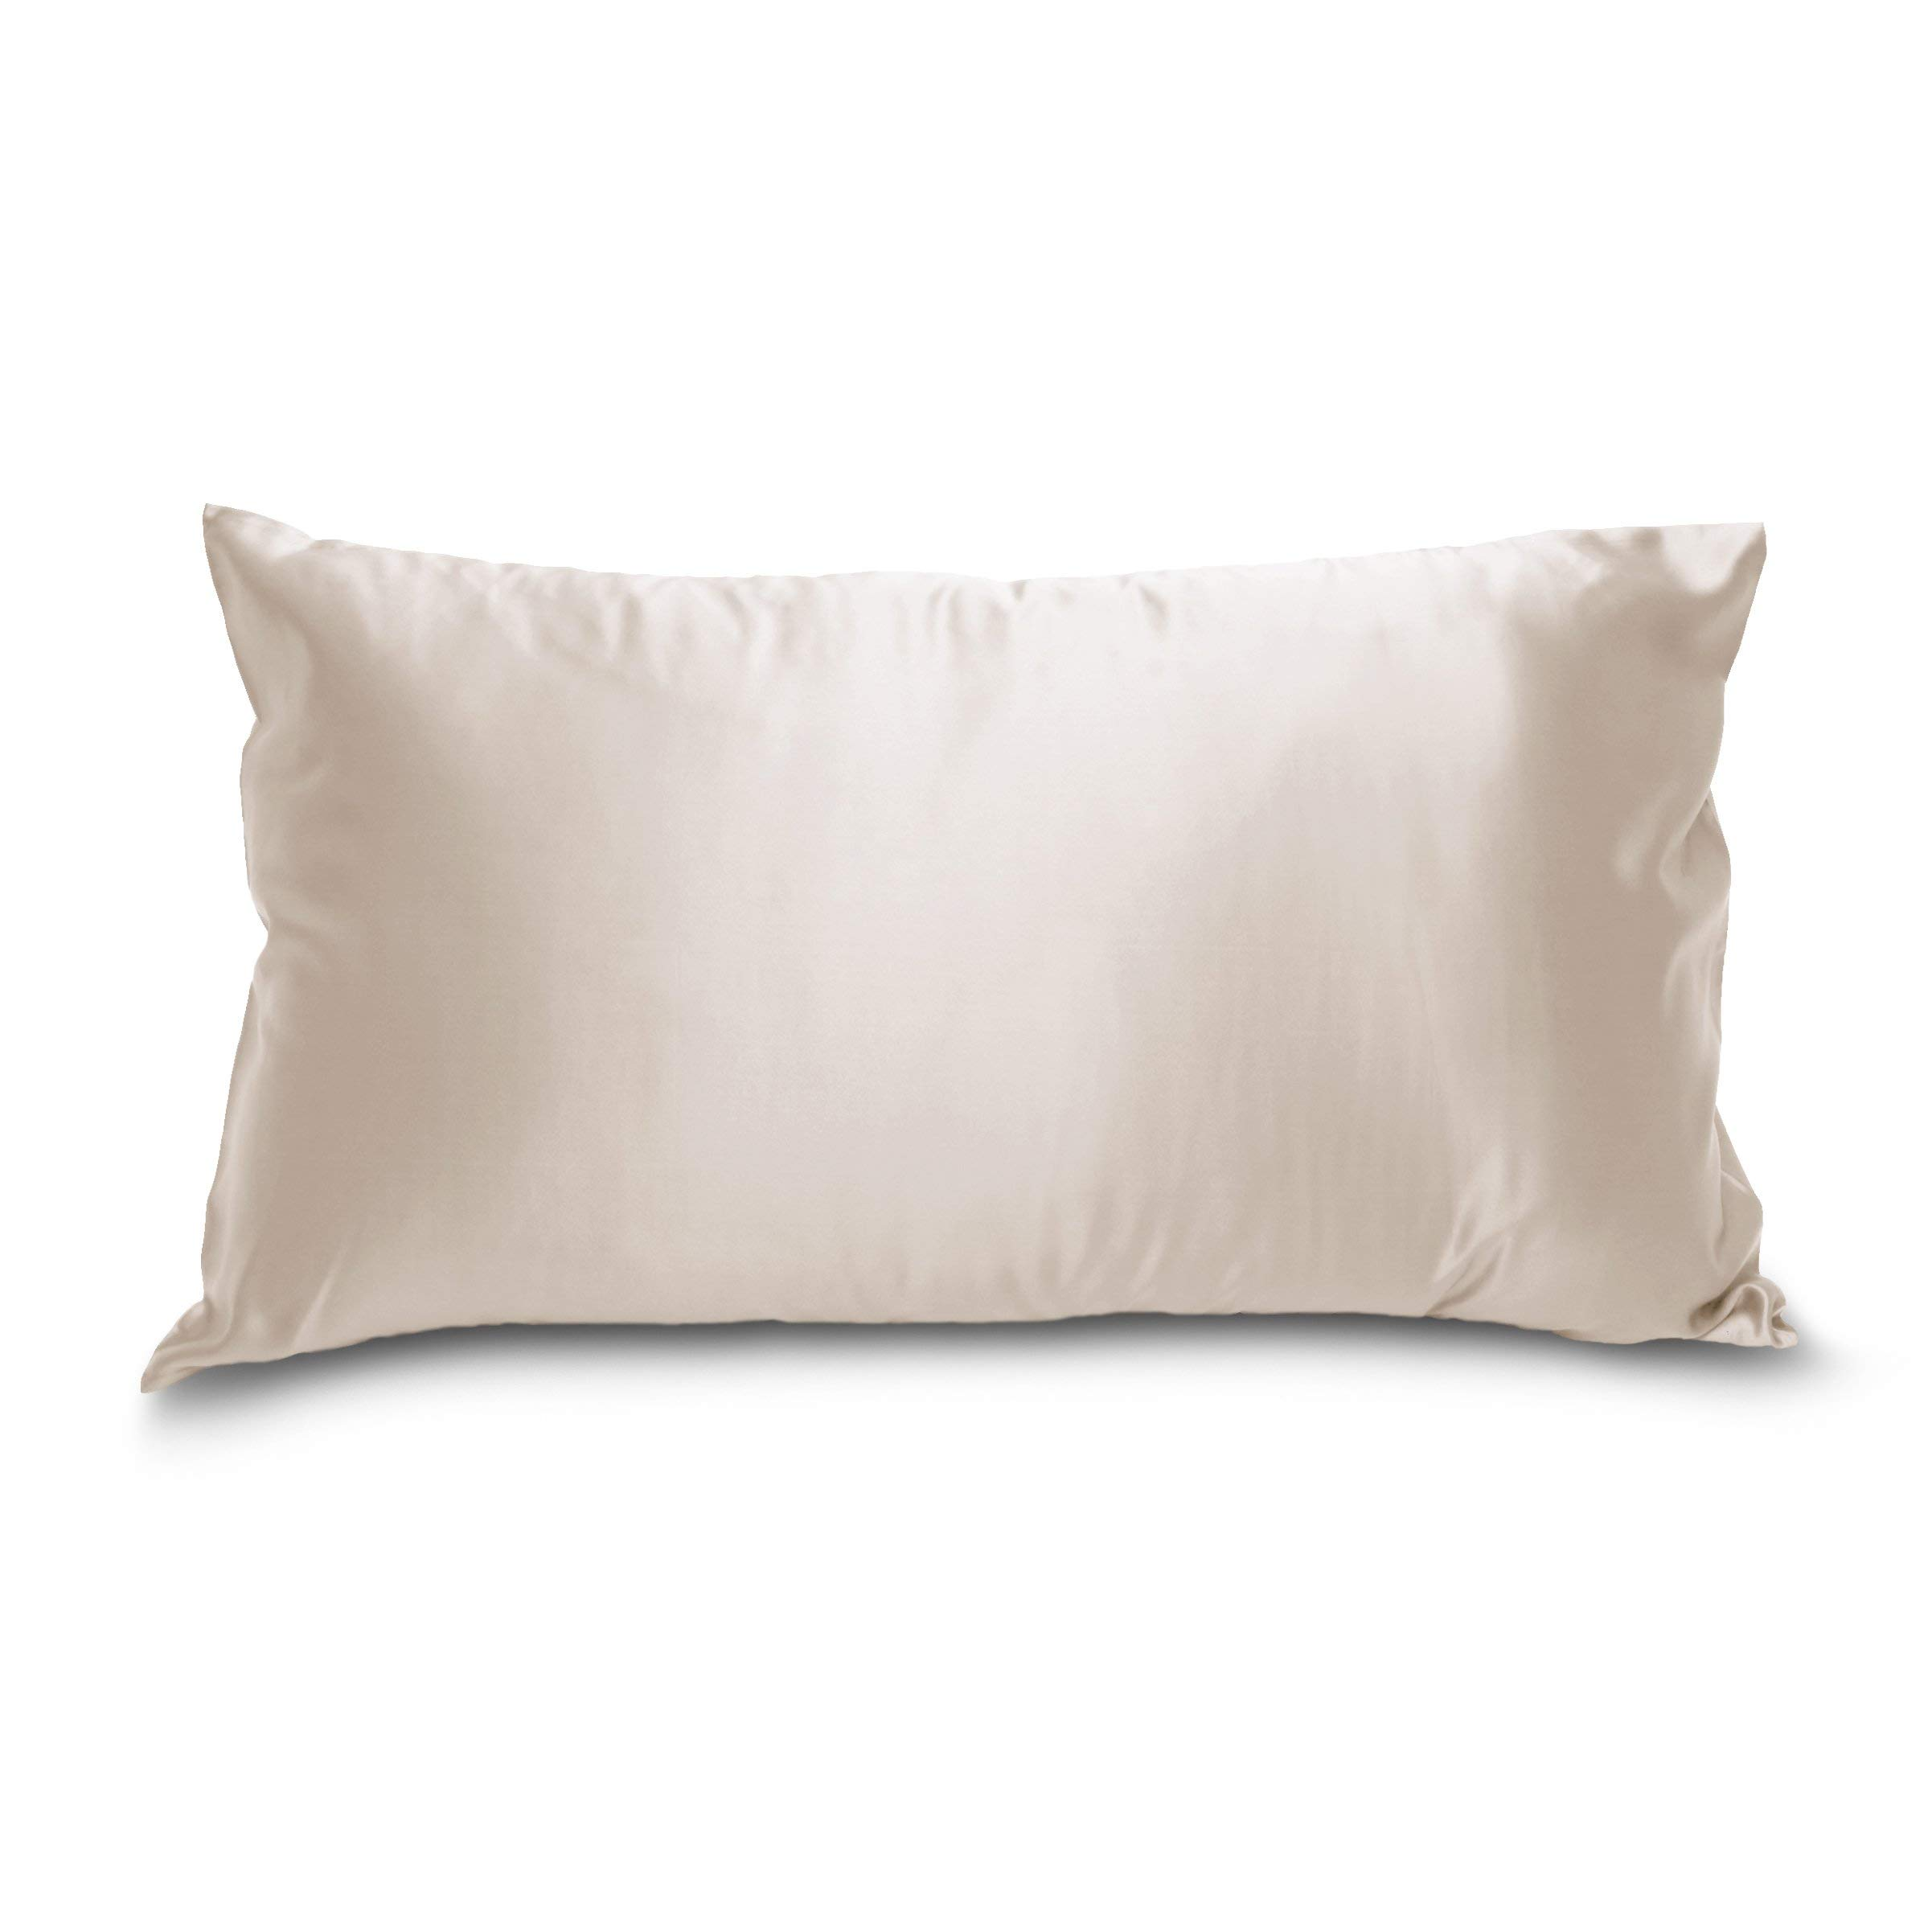 King Pillowcase (20'' x 36'') - Sand - Deluxe 22 Momme 100% Pure Mulberry Charmeuse Natural Bedding - Oeko-TEX Certified